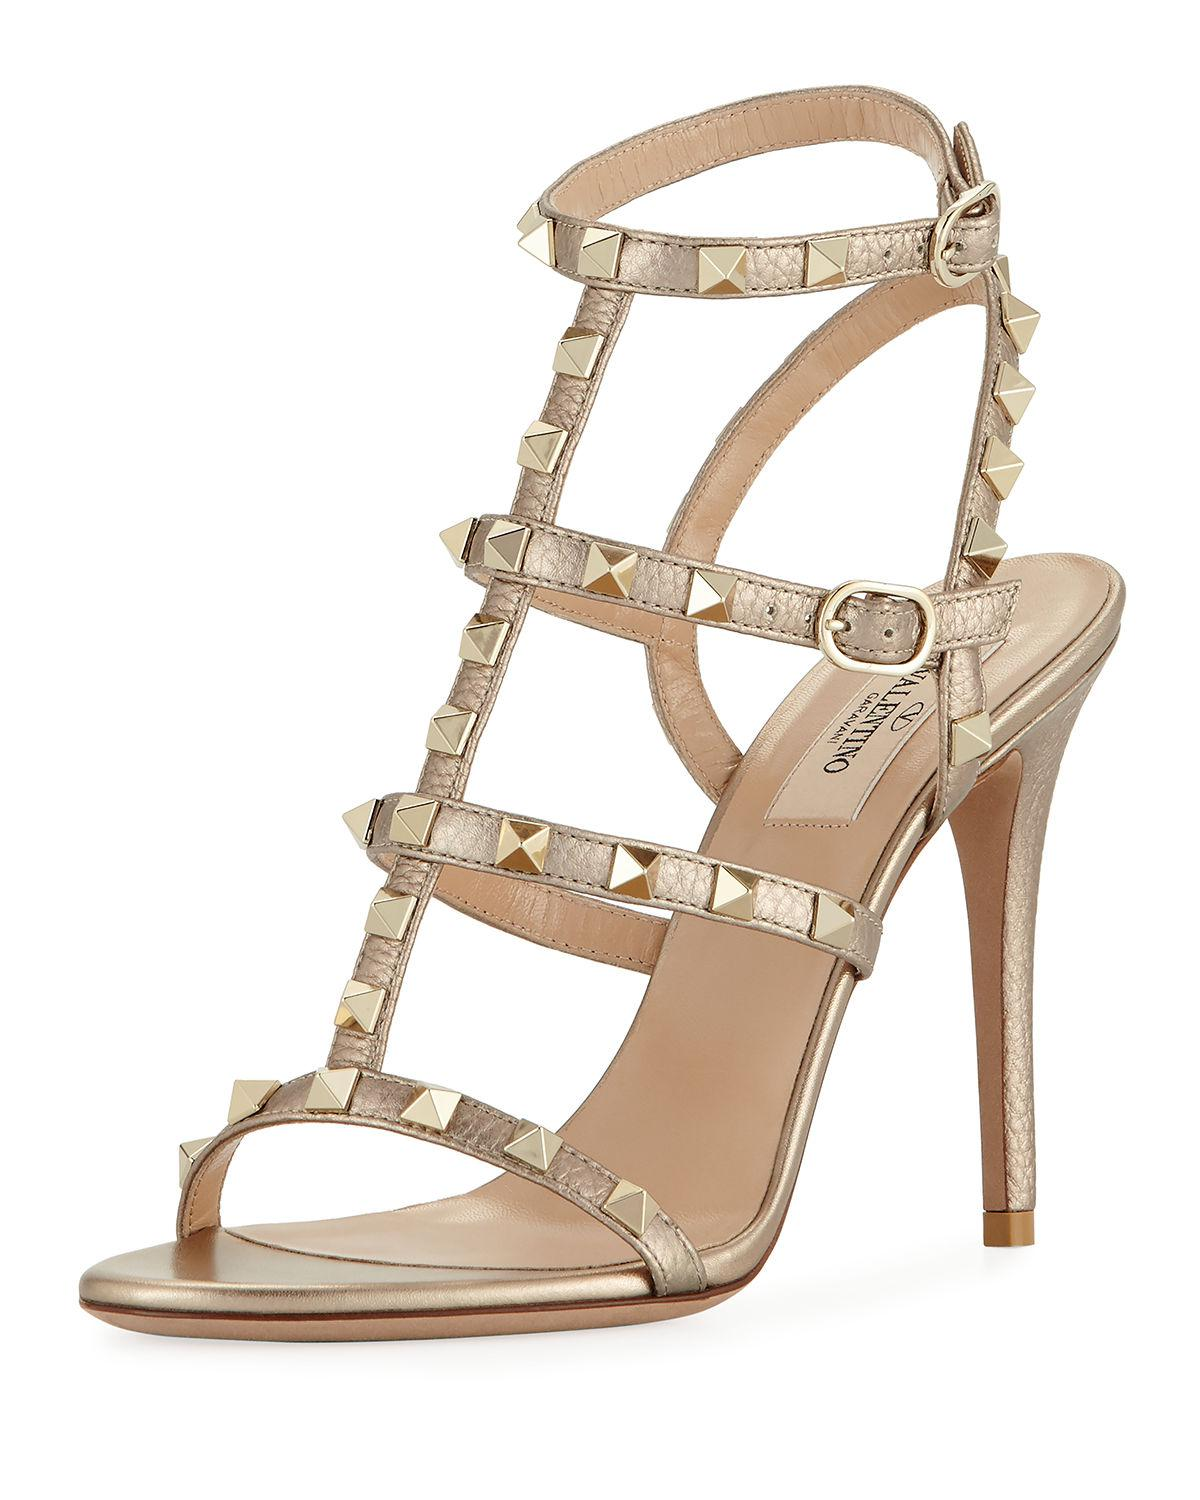 6c0ec8157dc Lyst - Valentino Rockstud Metallic Leather 105mm Sandal in Metallic